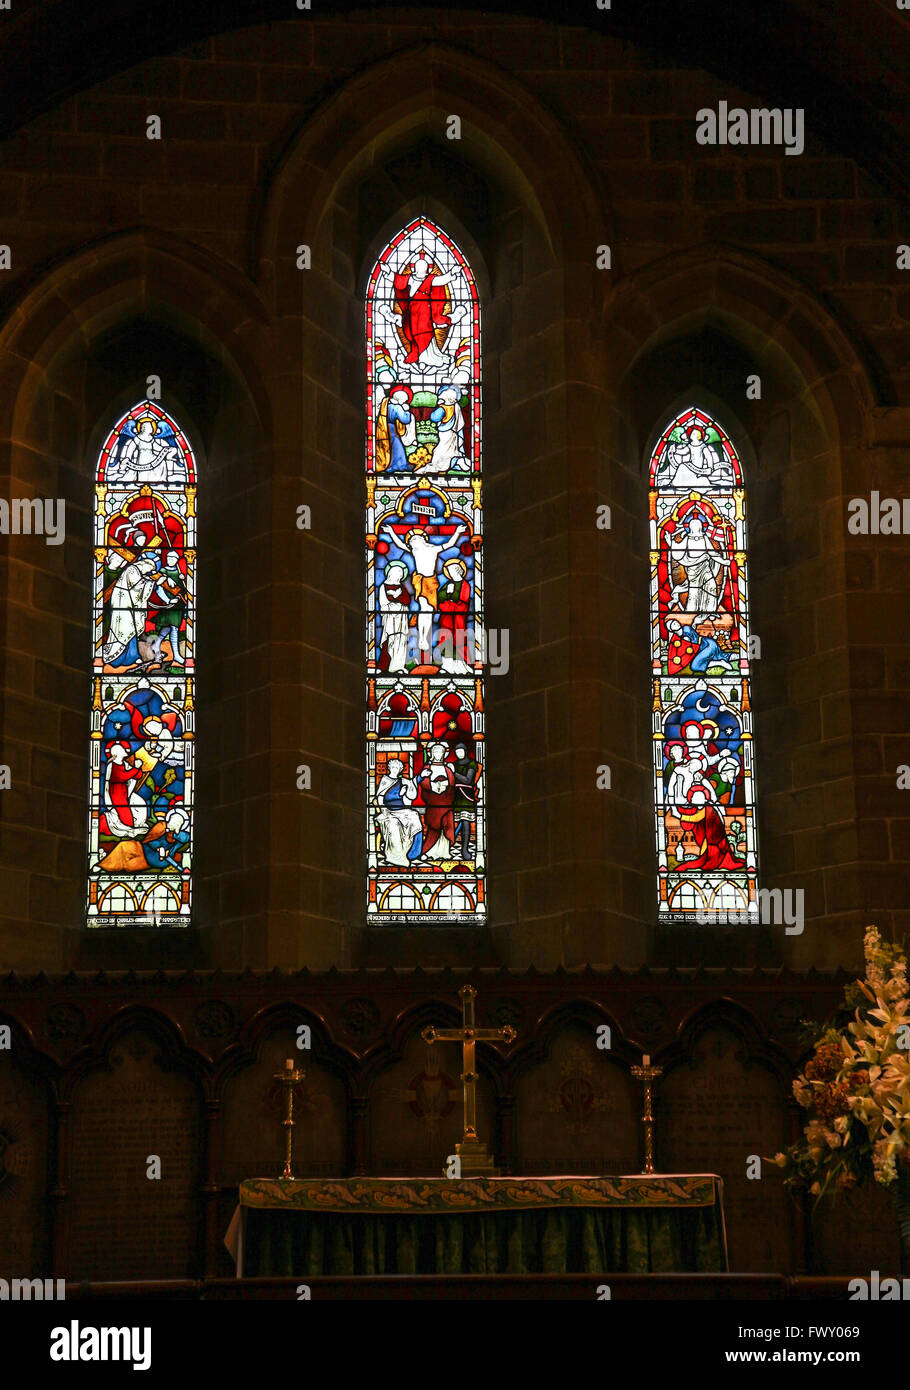 Stained glass window in St Lawrence's parish Church Eyam Derbyshire England UK Stock Photo